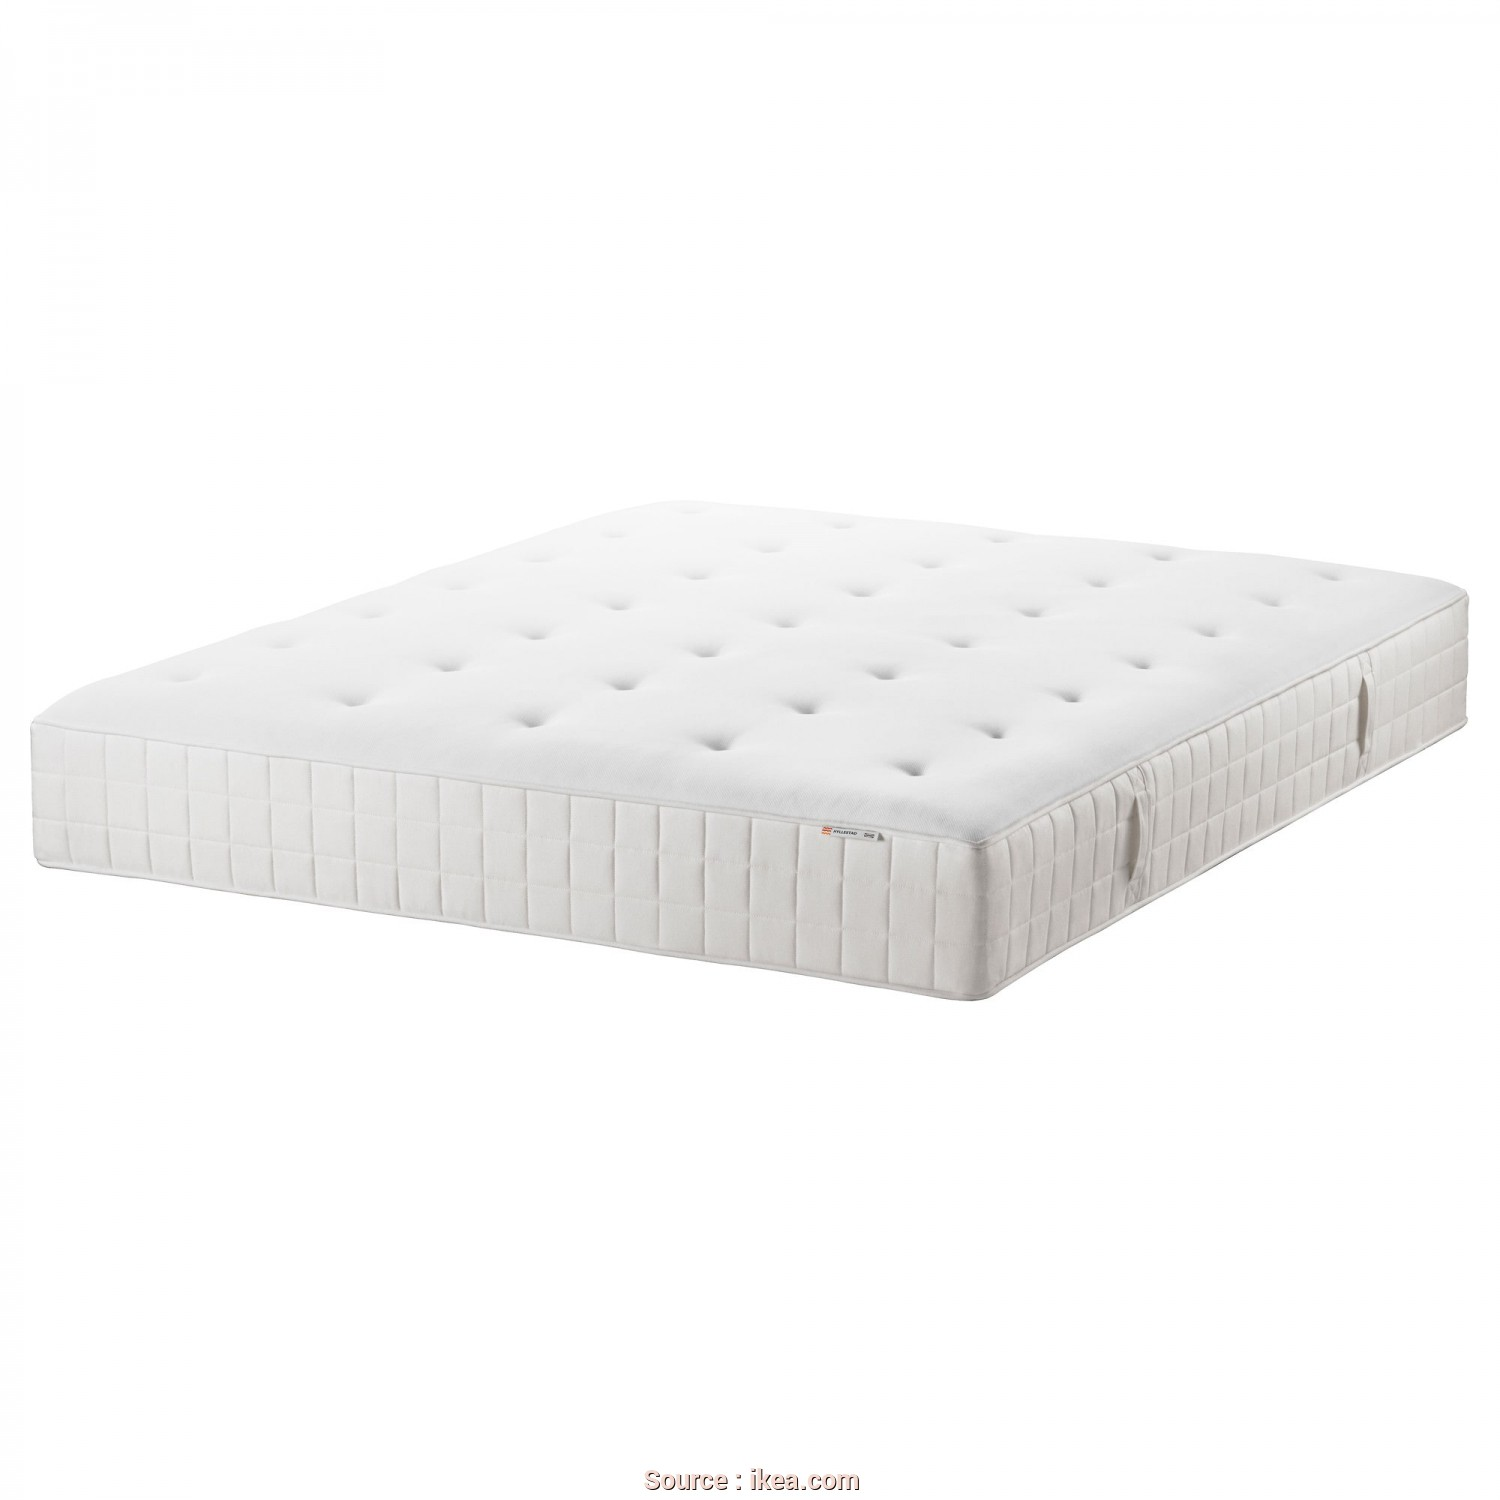 Beddinge Ikea Matrace, Originale IKEA HYLLESTAD Pocket Sprung Mattress A Generous Layer Of Soft Fillings Adds Support, Comfort